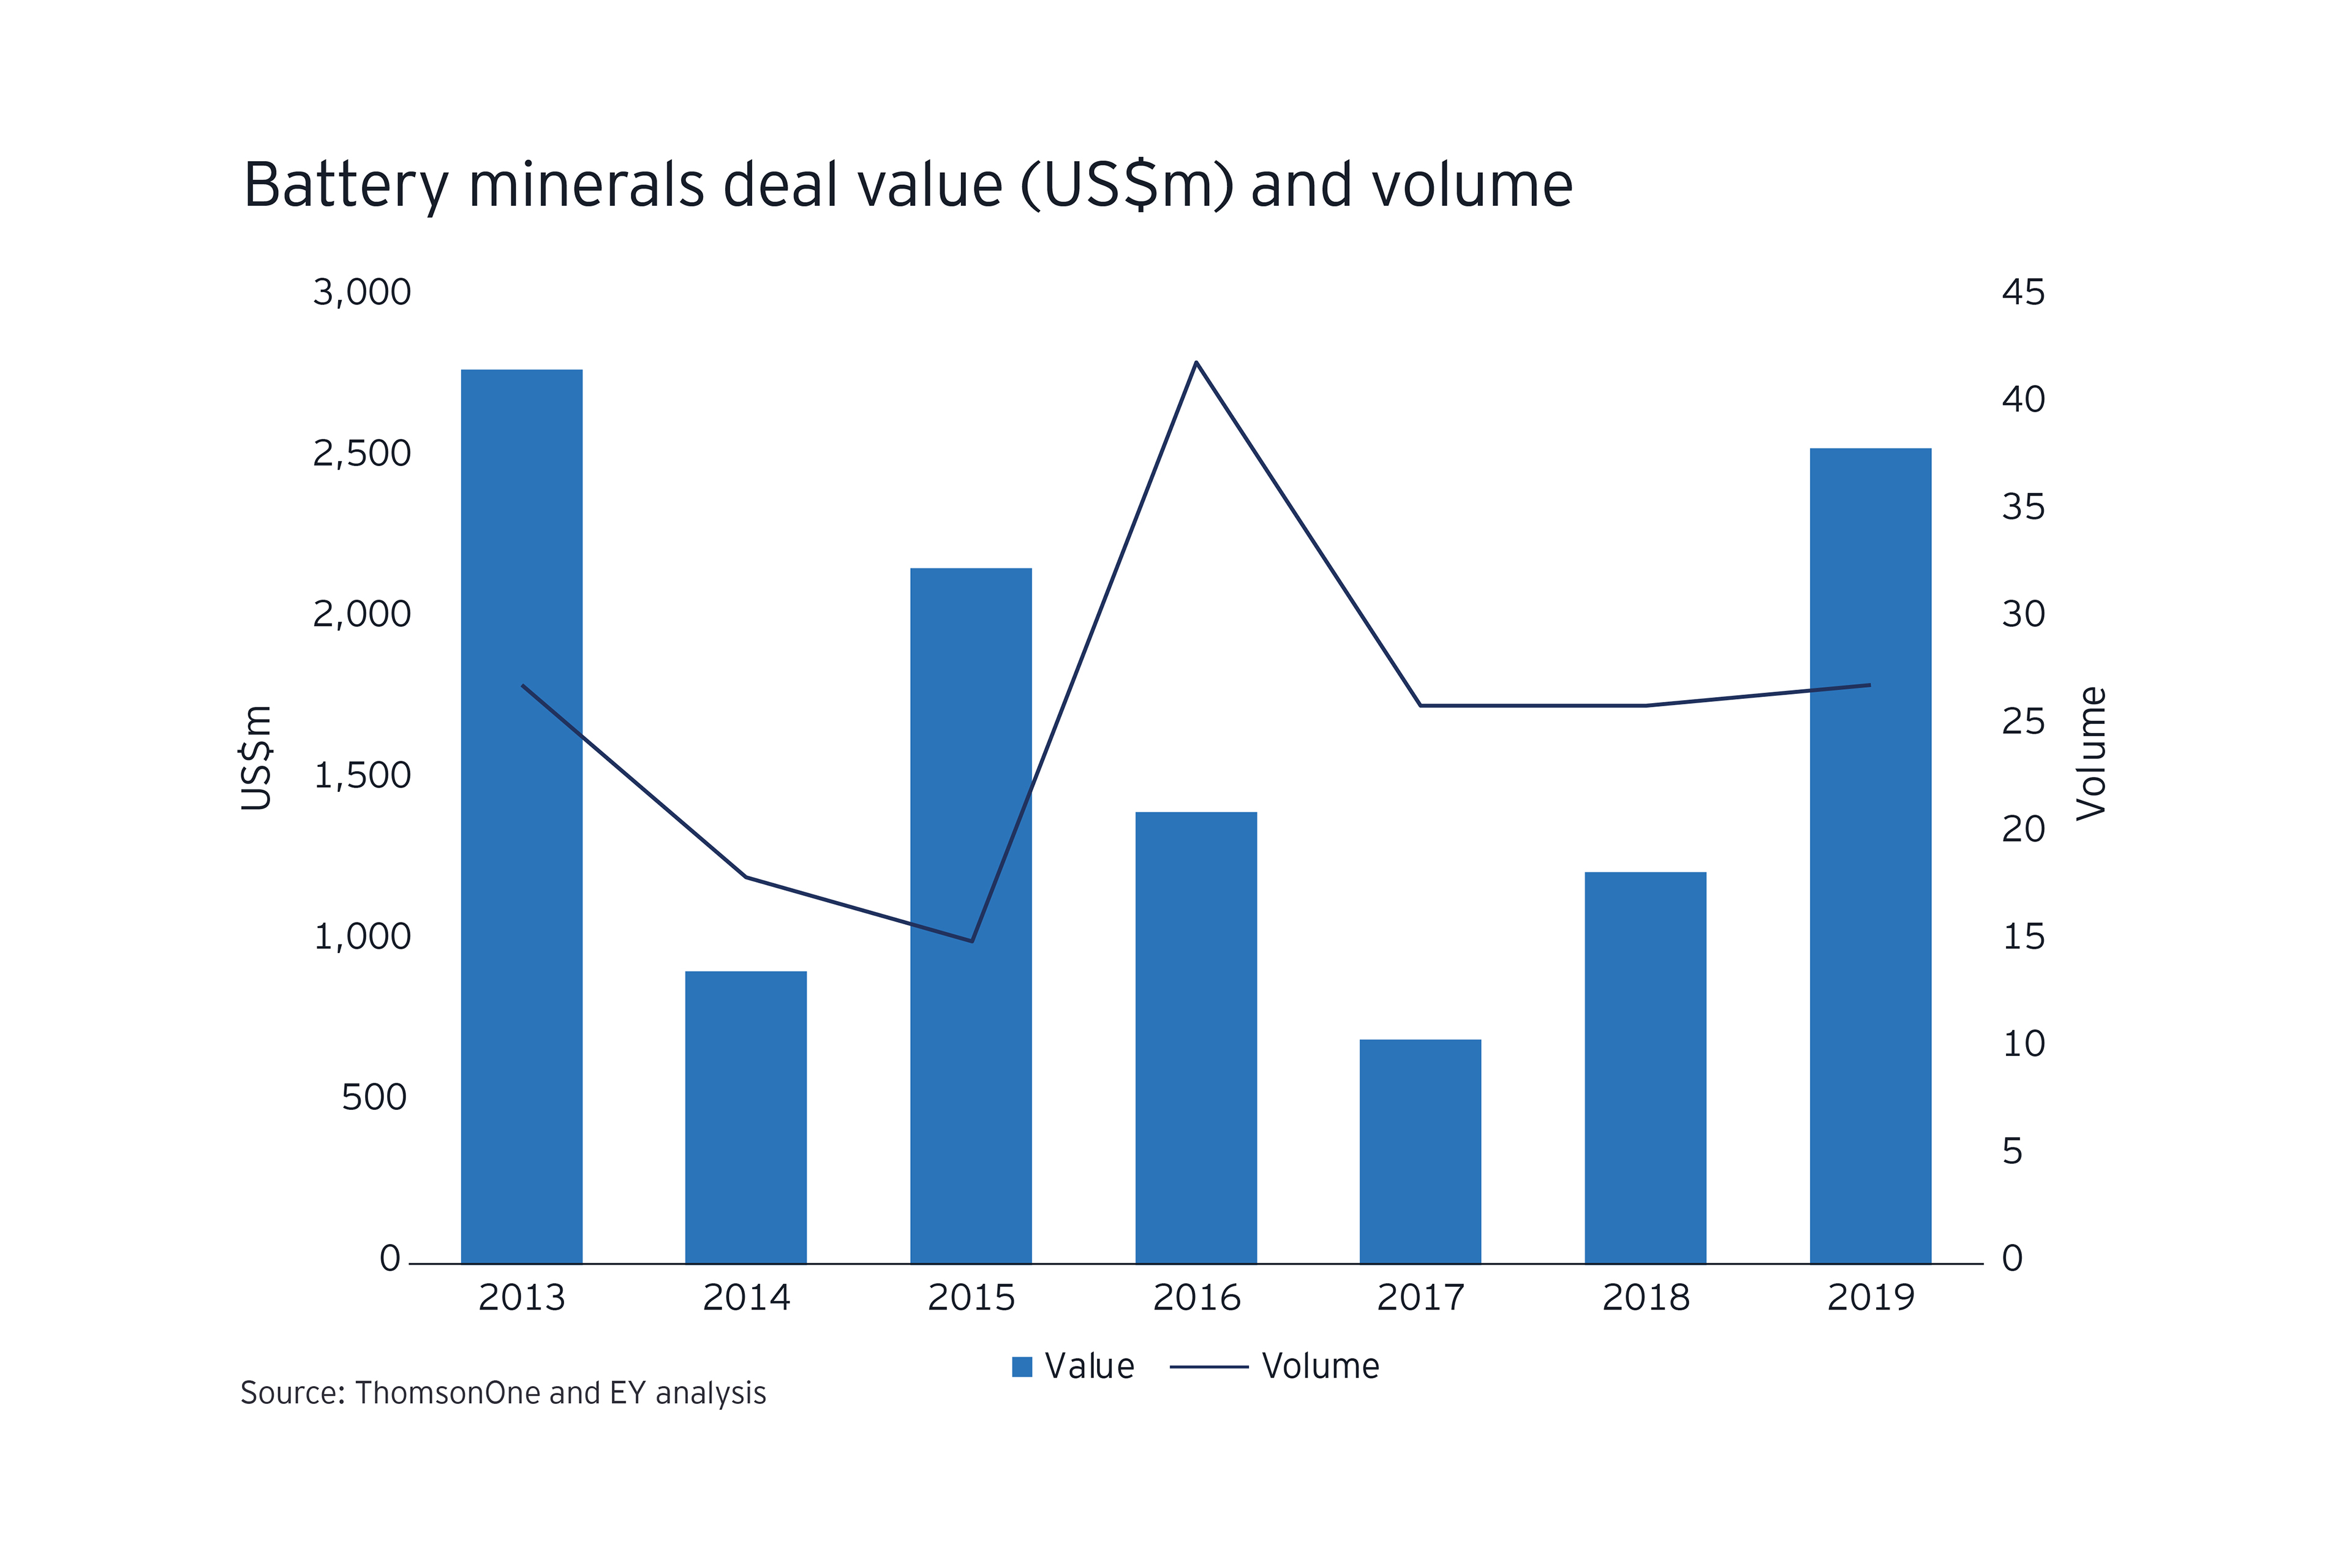 1014736_M&A_Battery minerals deal value (US$m) and volume_3840x2560